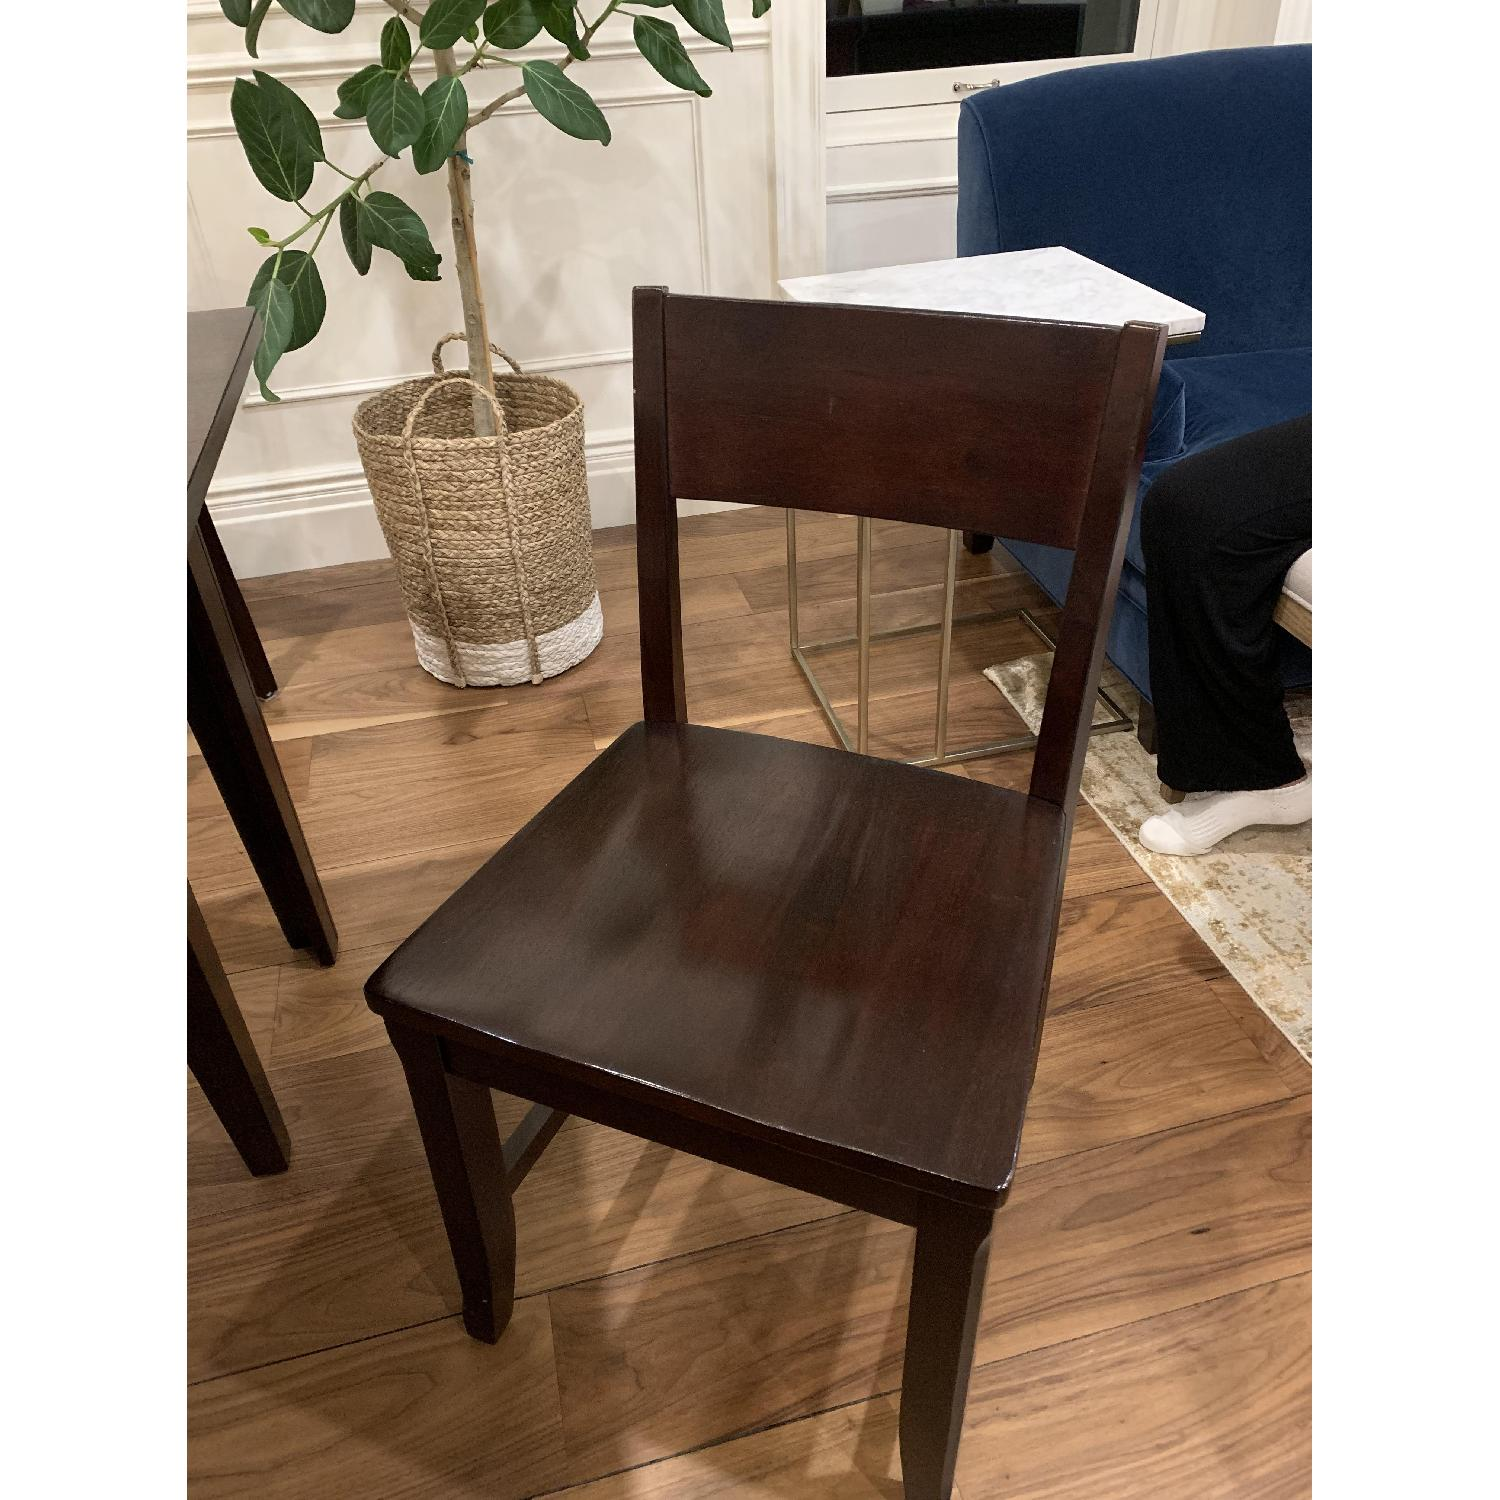 Montreal Espresso Wood Chairs - image-17